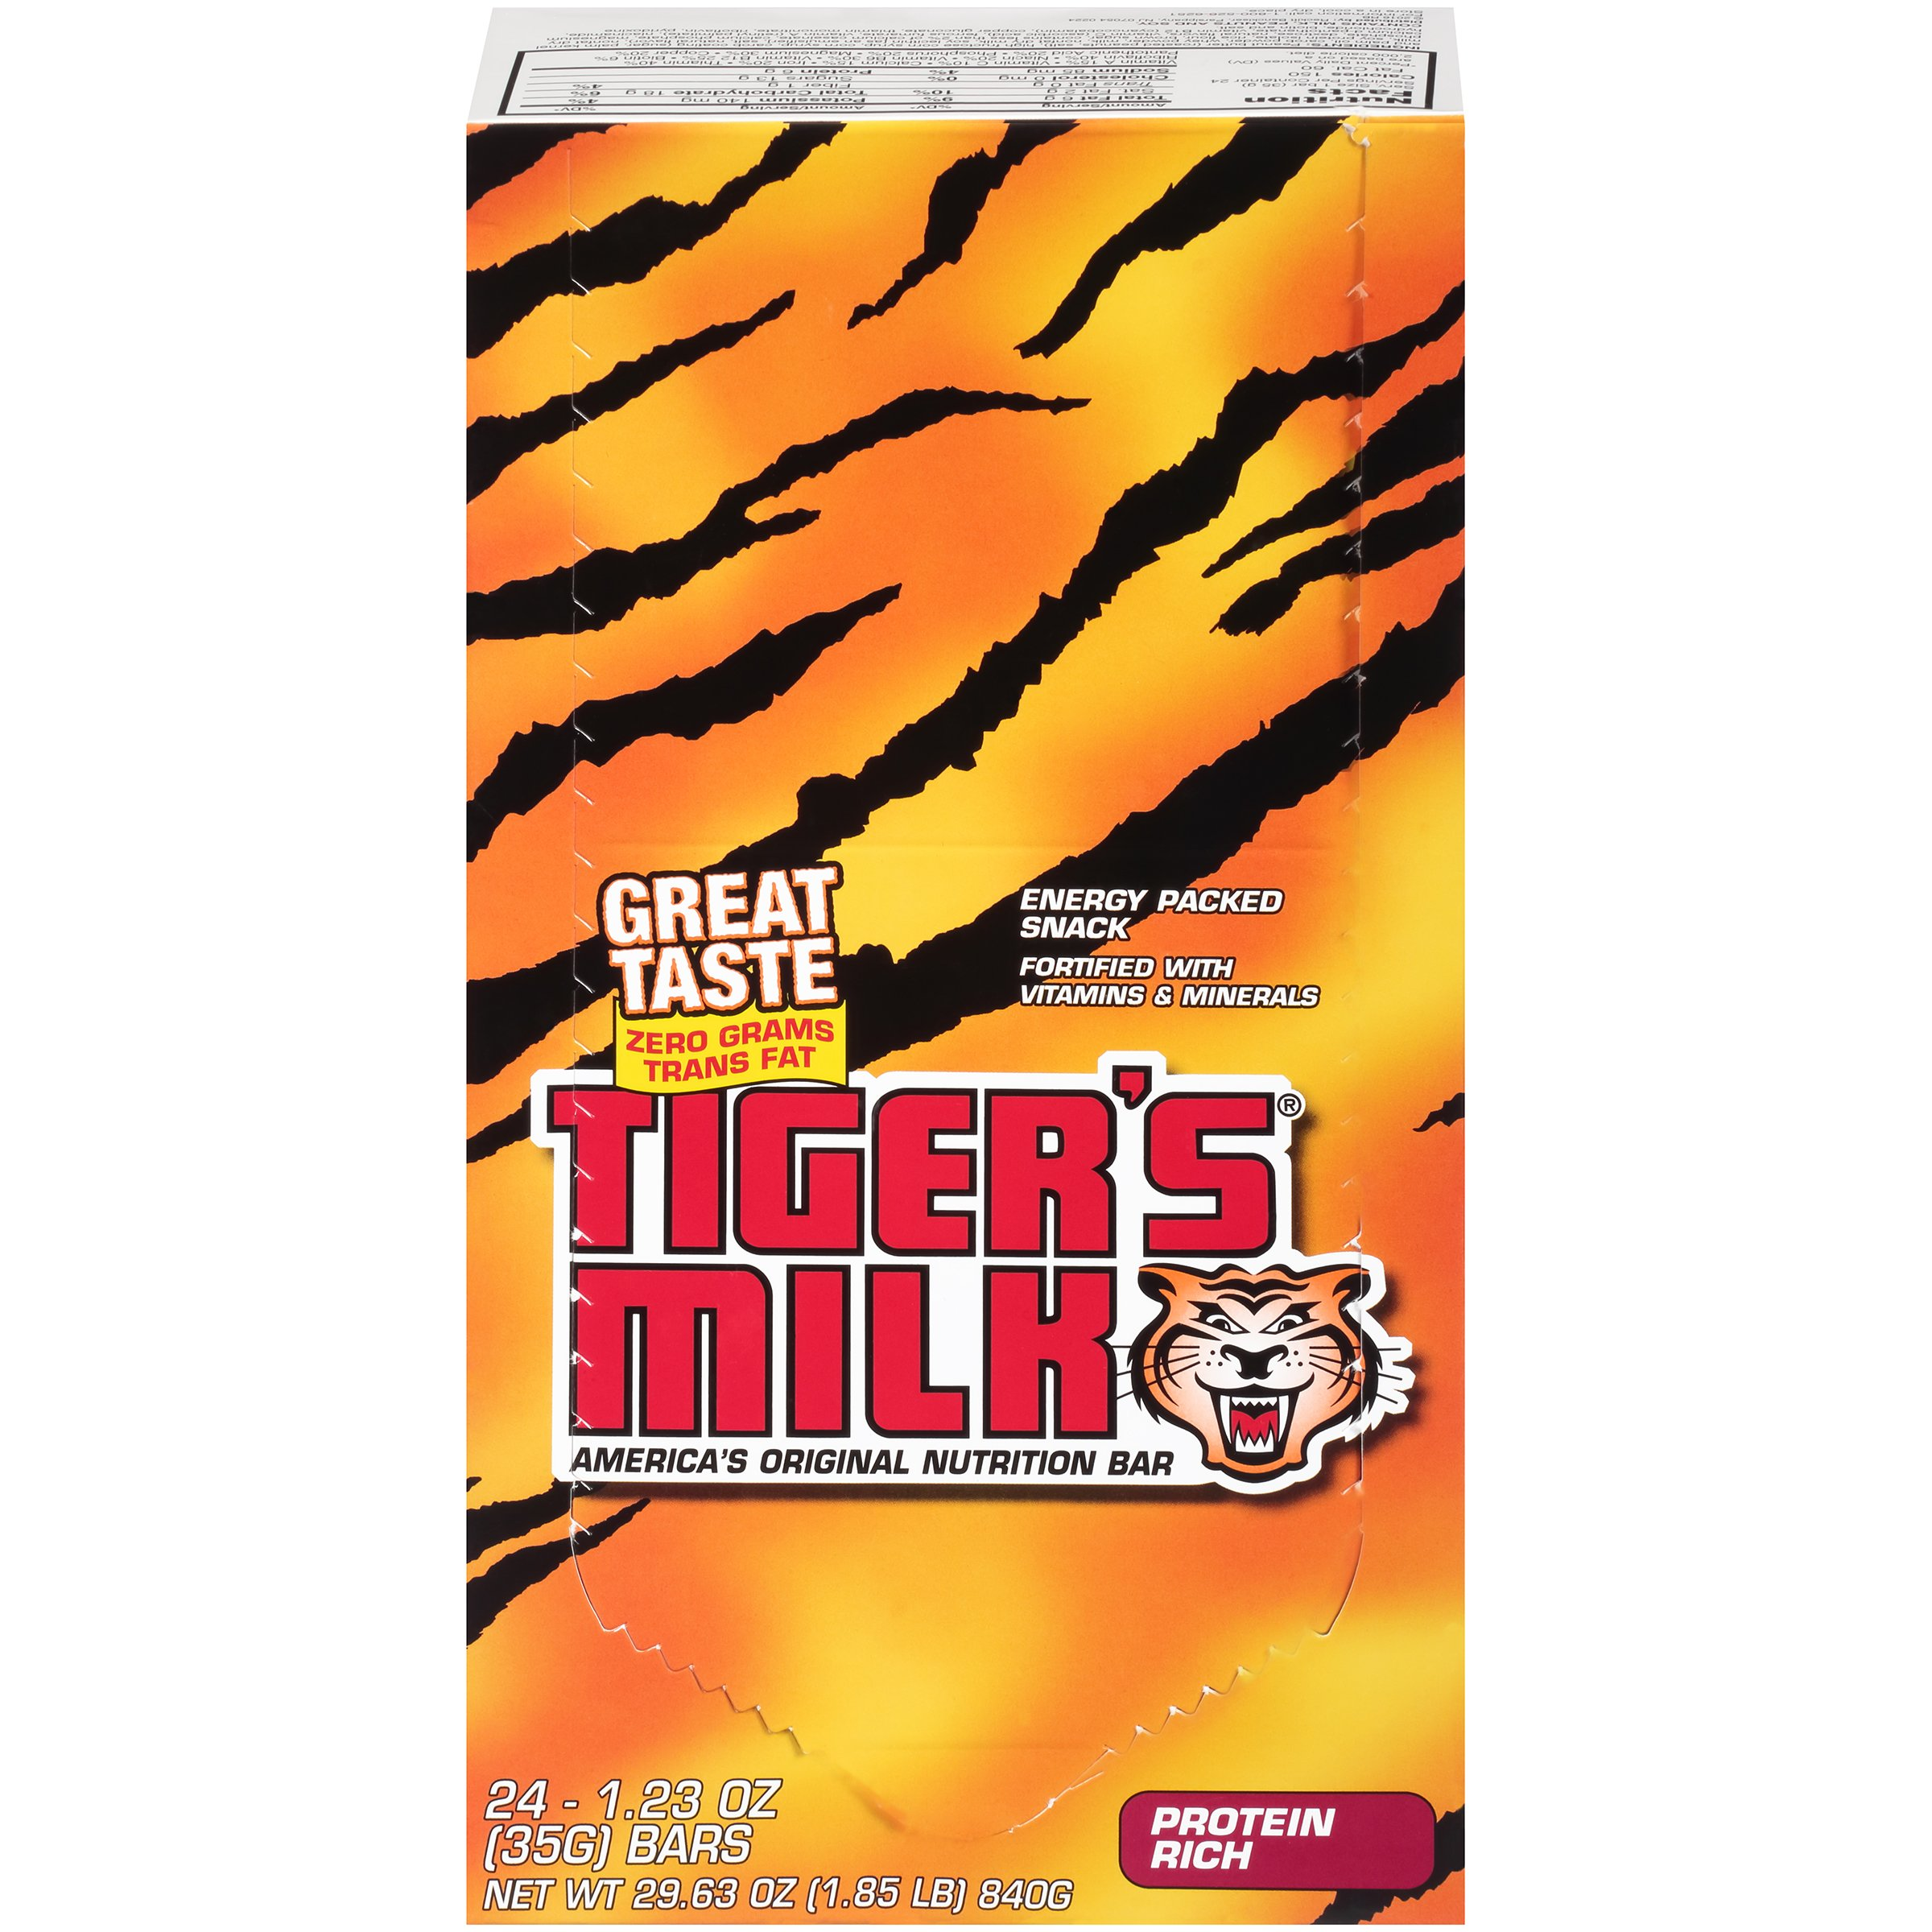 Tiger's Milk Protein Rich Nutrition Bar, 35 g (Pack of 96)